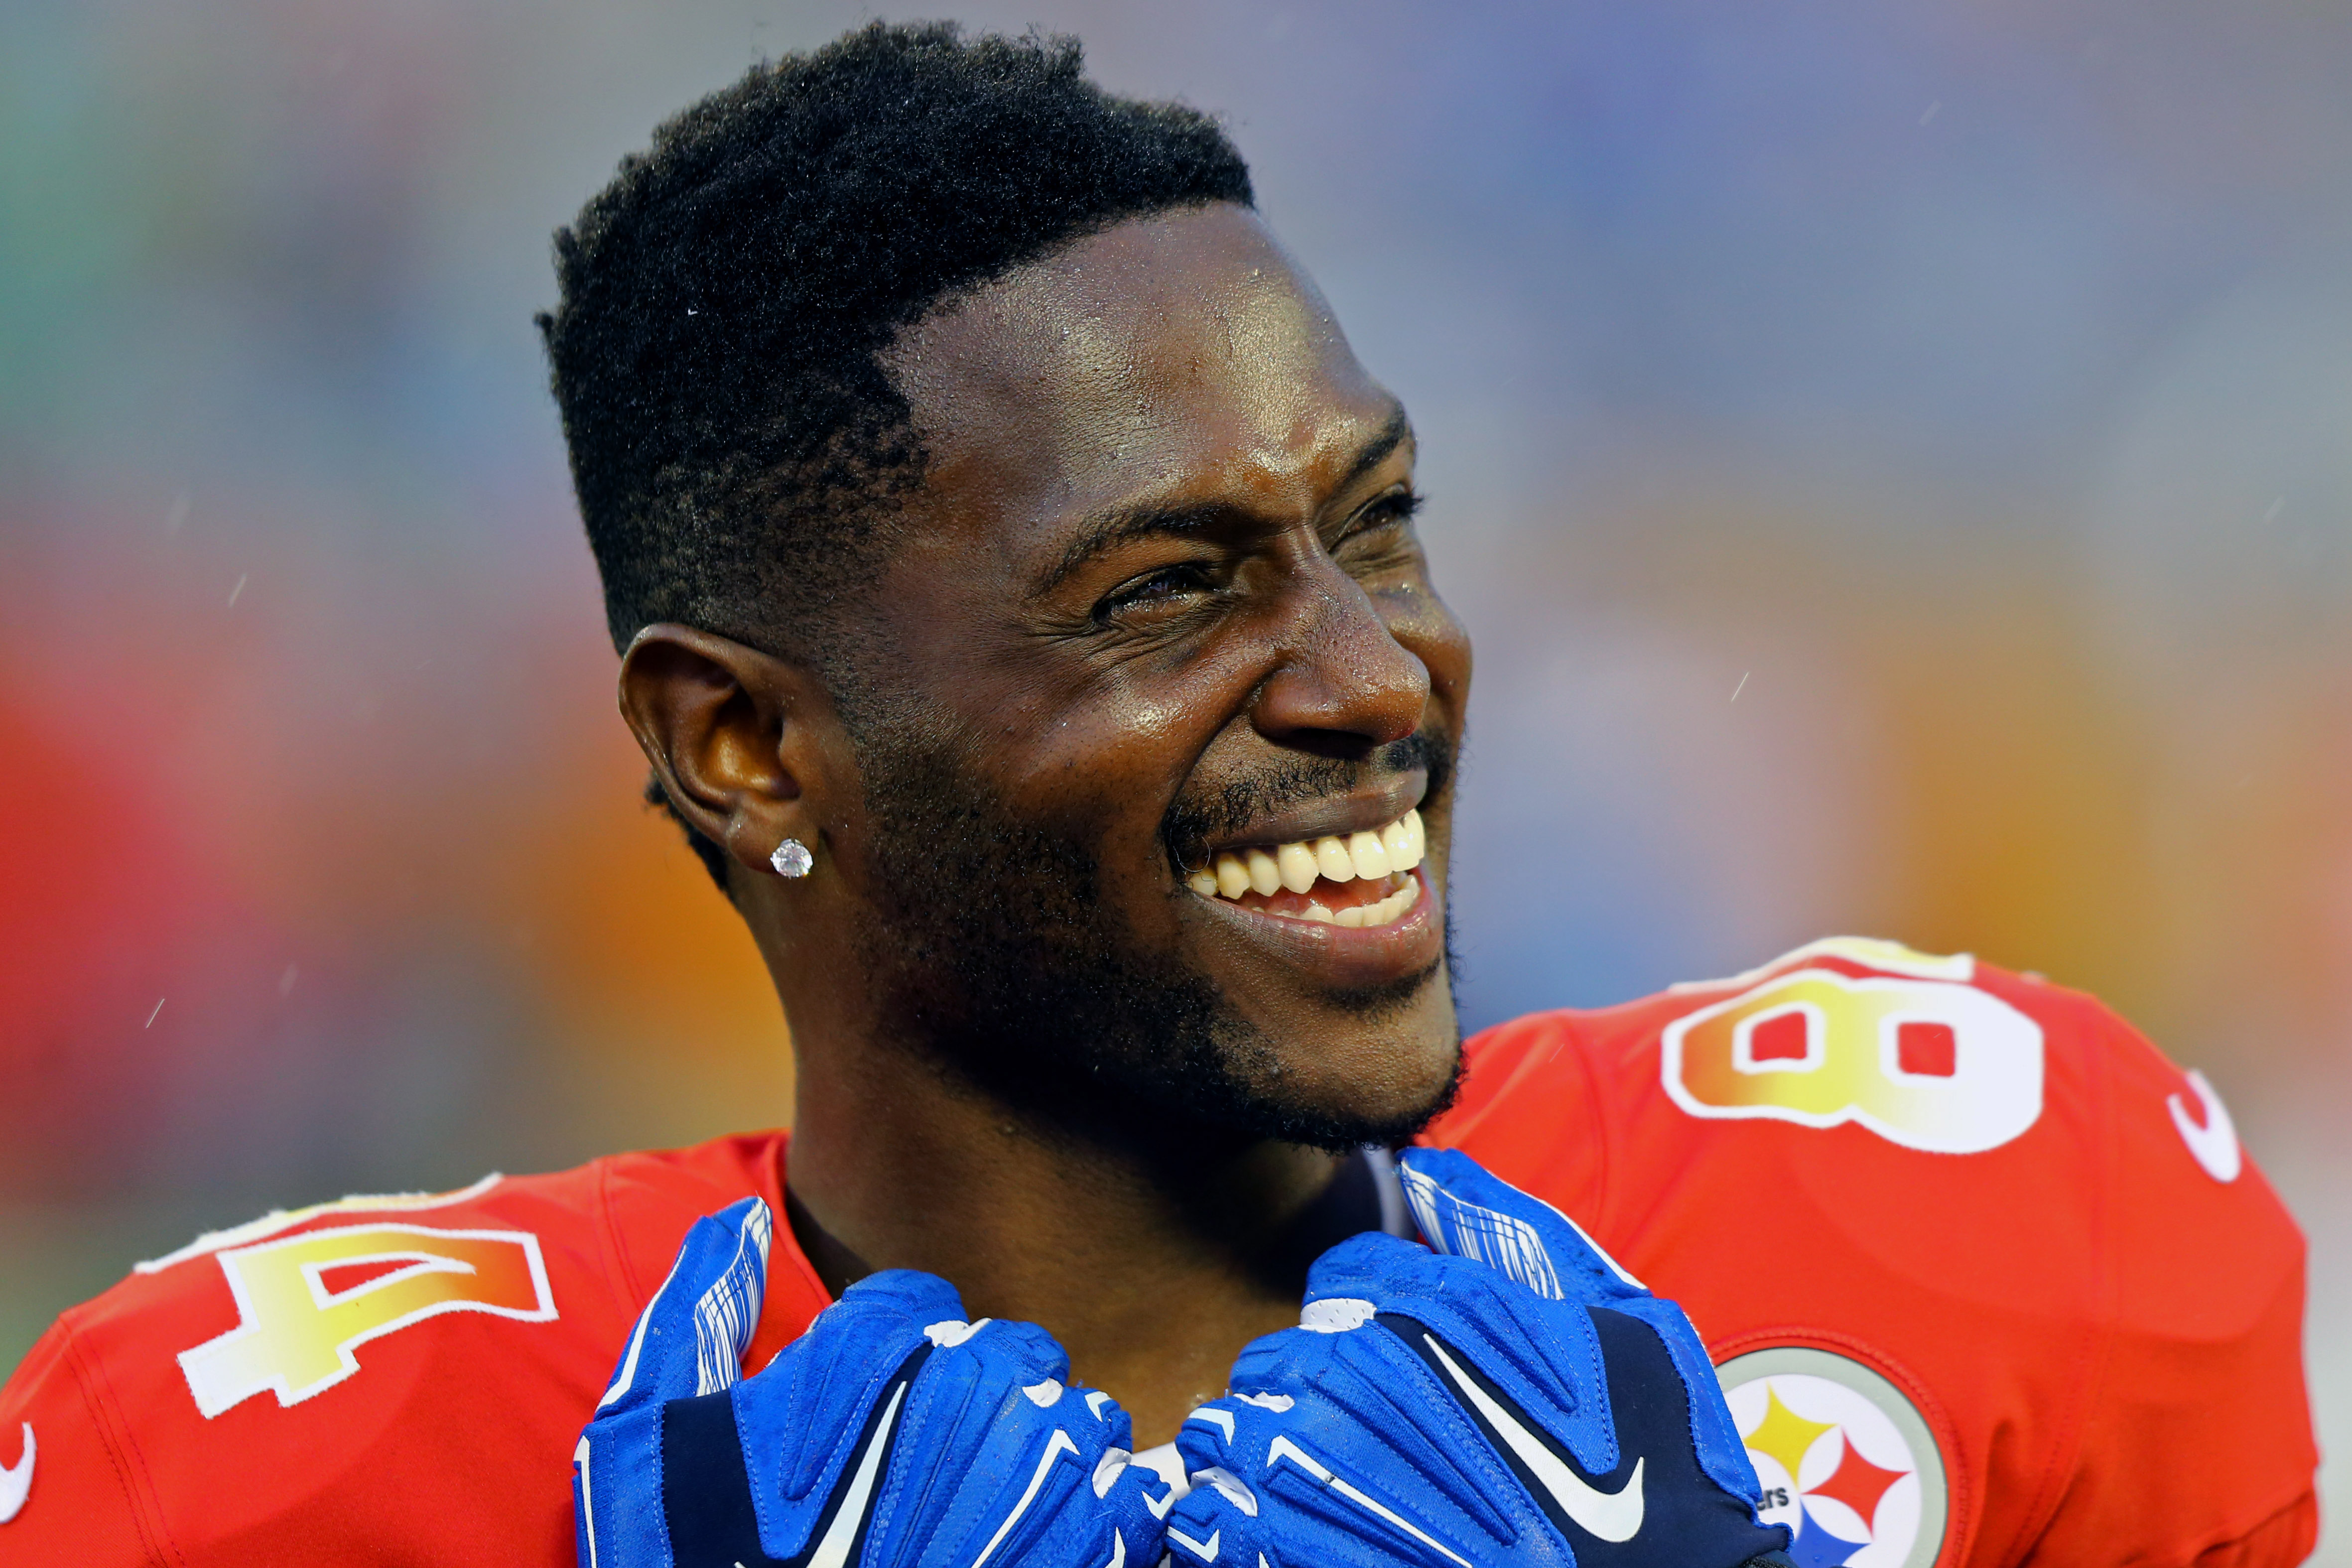 Antonio Brown's bizarre tweets spark speculation, memes from fans